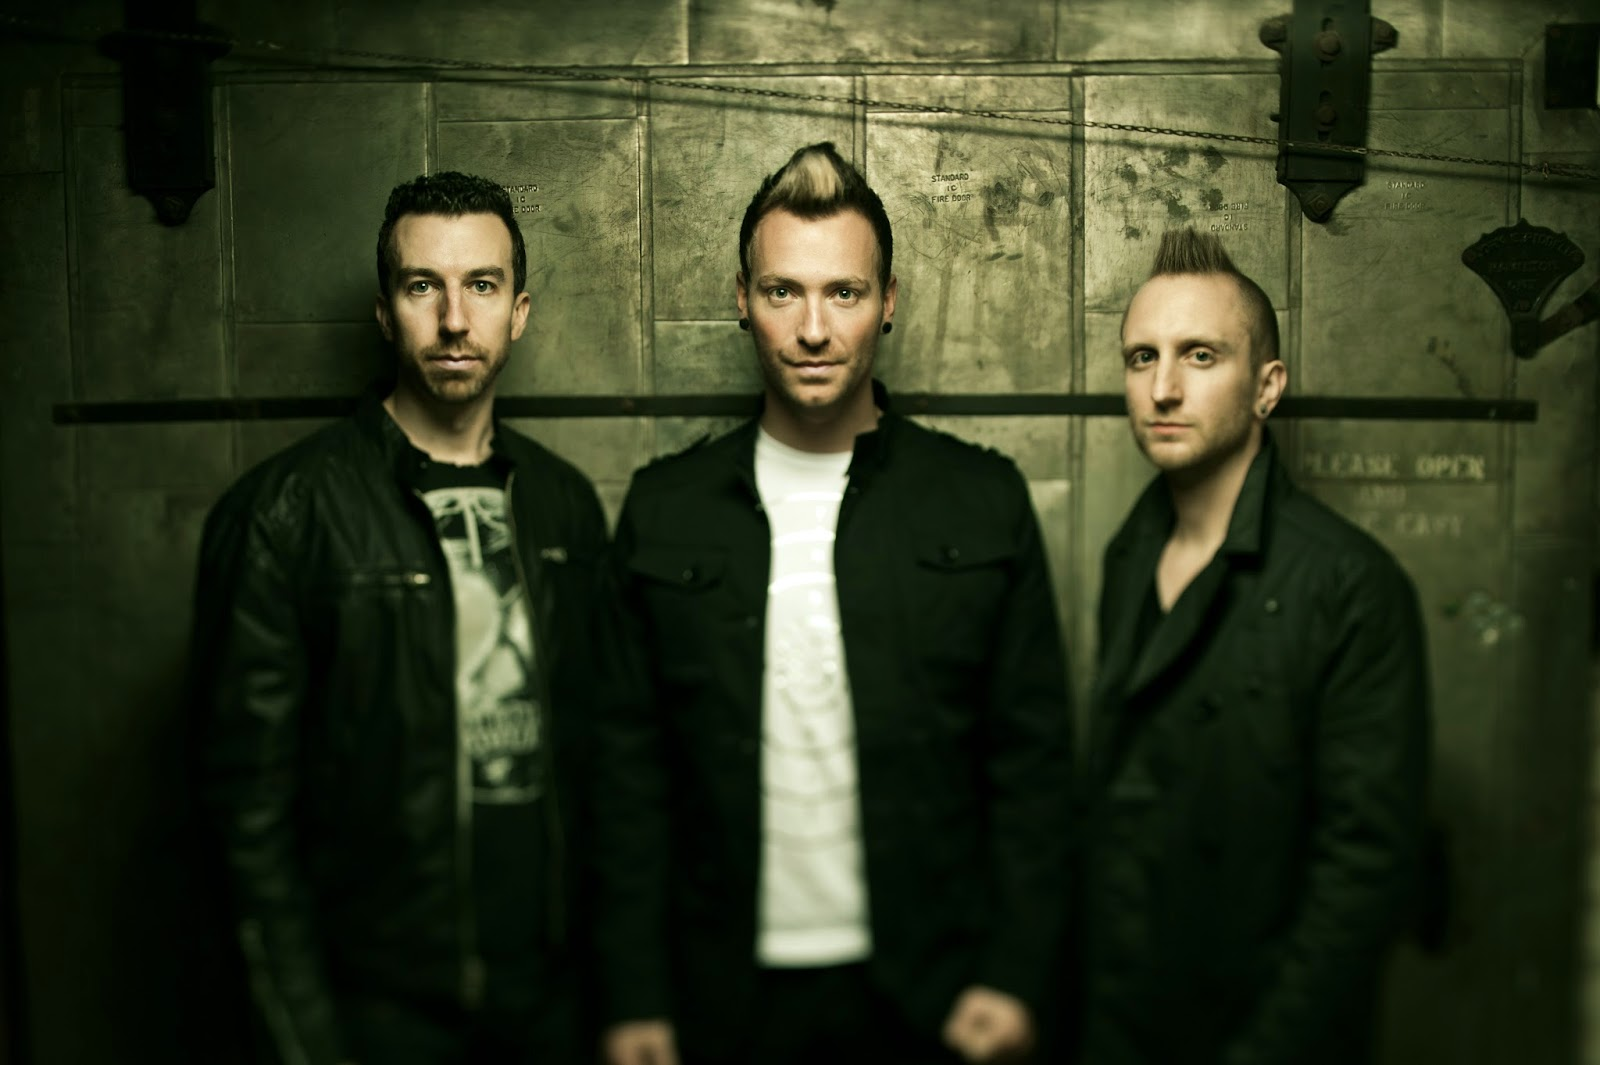 Thousand Foot Krutch - Oxygen Inhale 2014 Biography and History